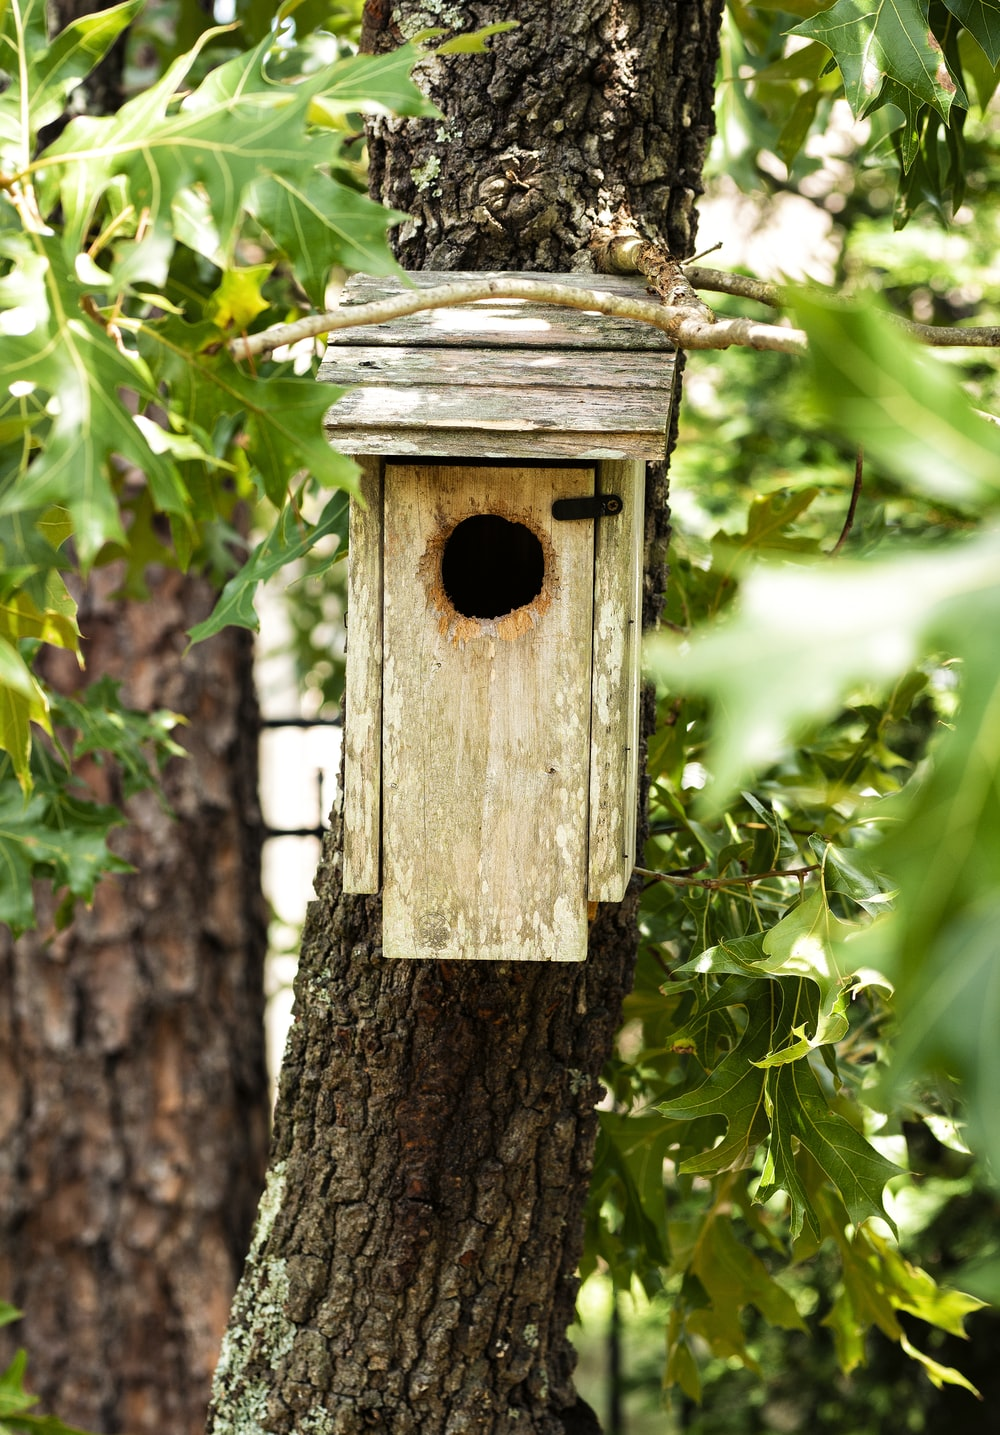 brown wooden bird house on brown tree